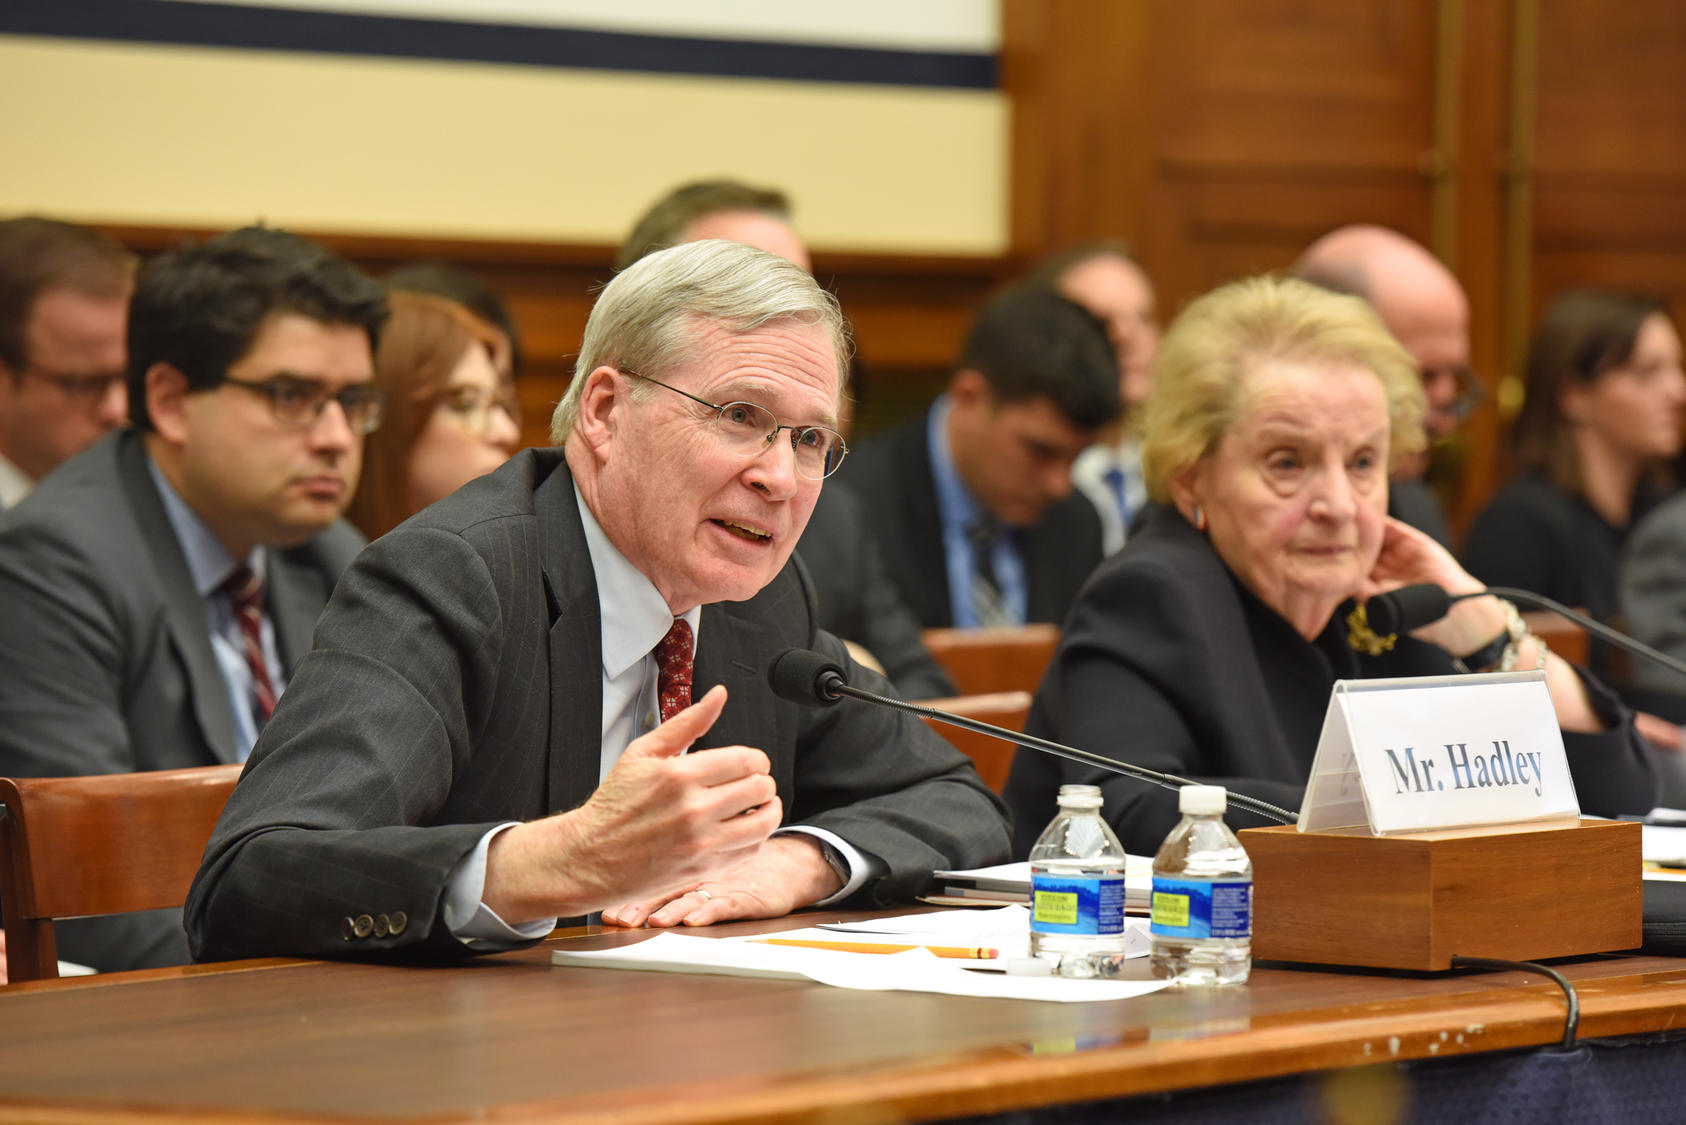 Stephen J. Hadley and Madeline Albright giving testimony